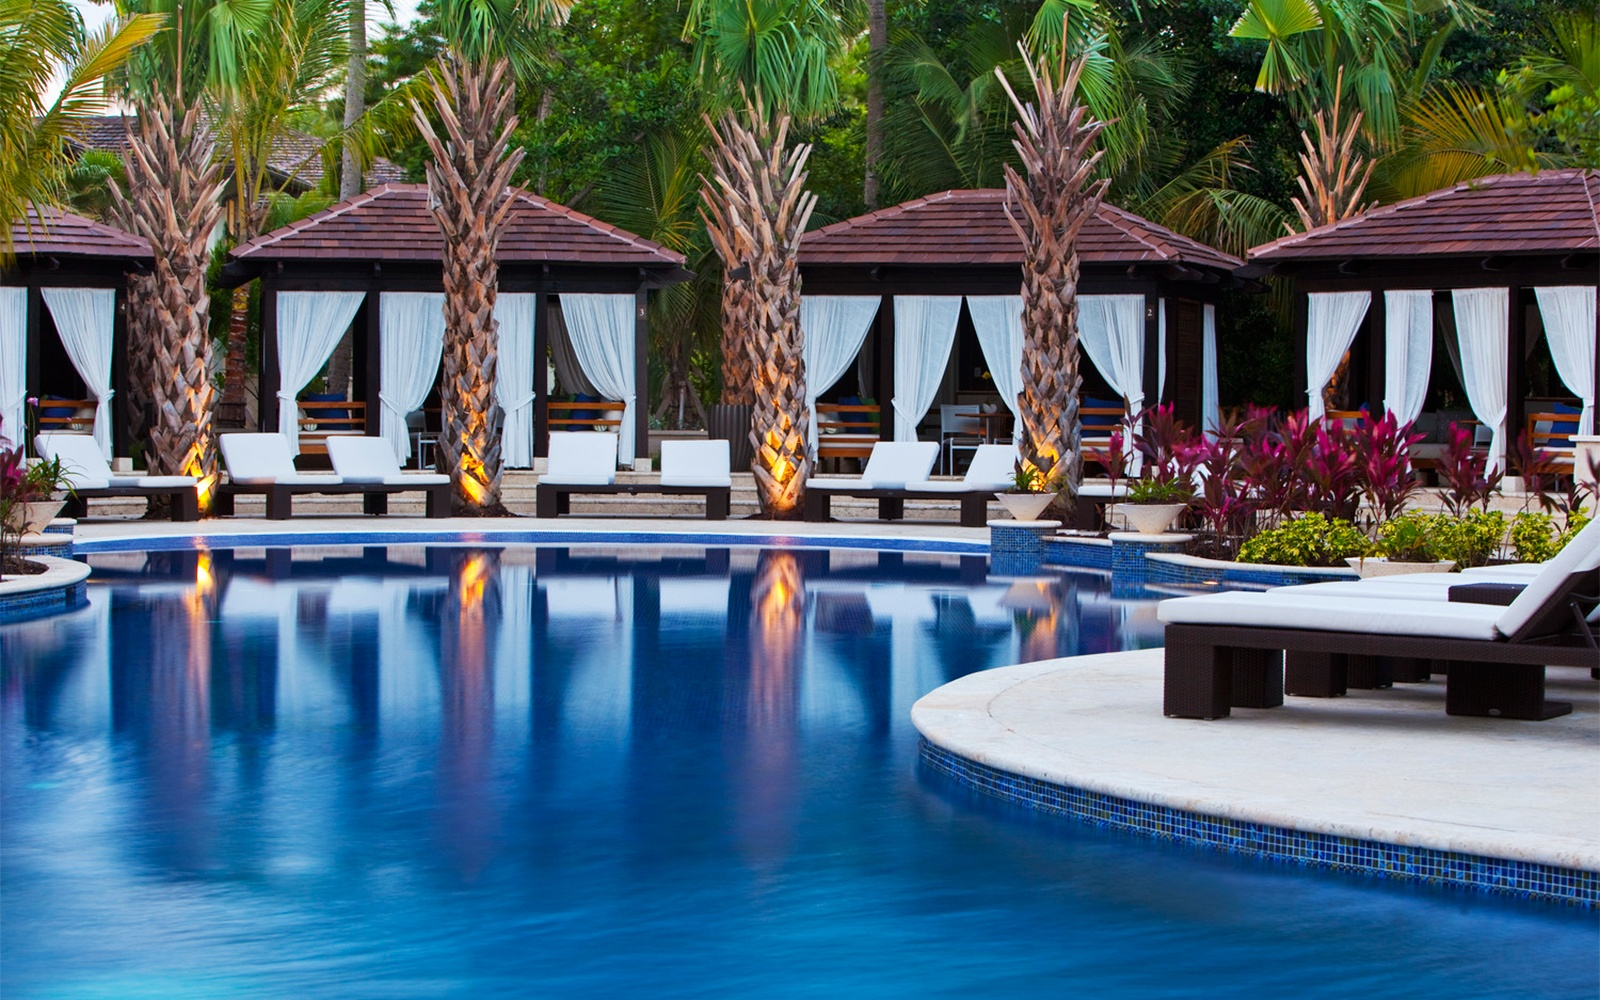 No. 7: The St. Regis Bahia Beach Resort, Puerto Rico